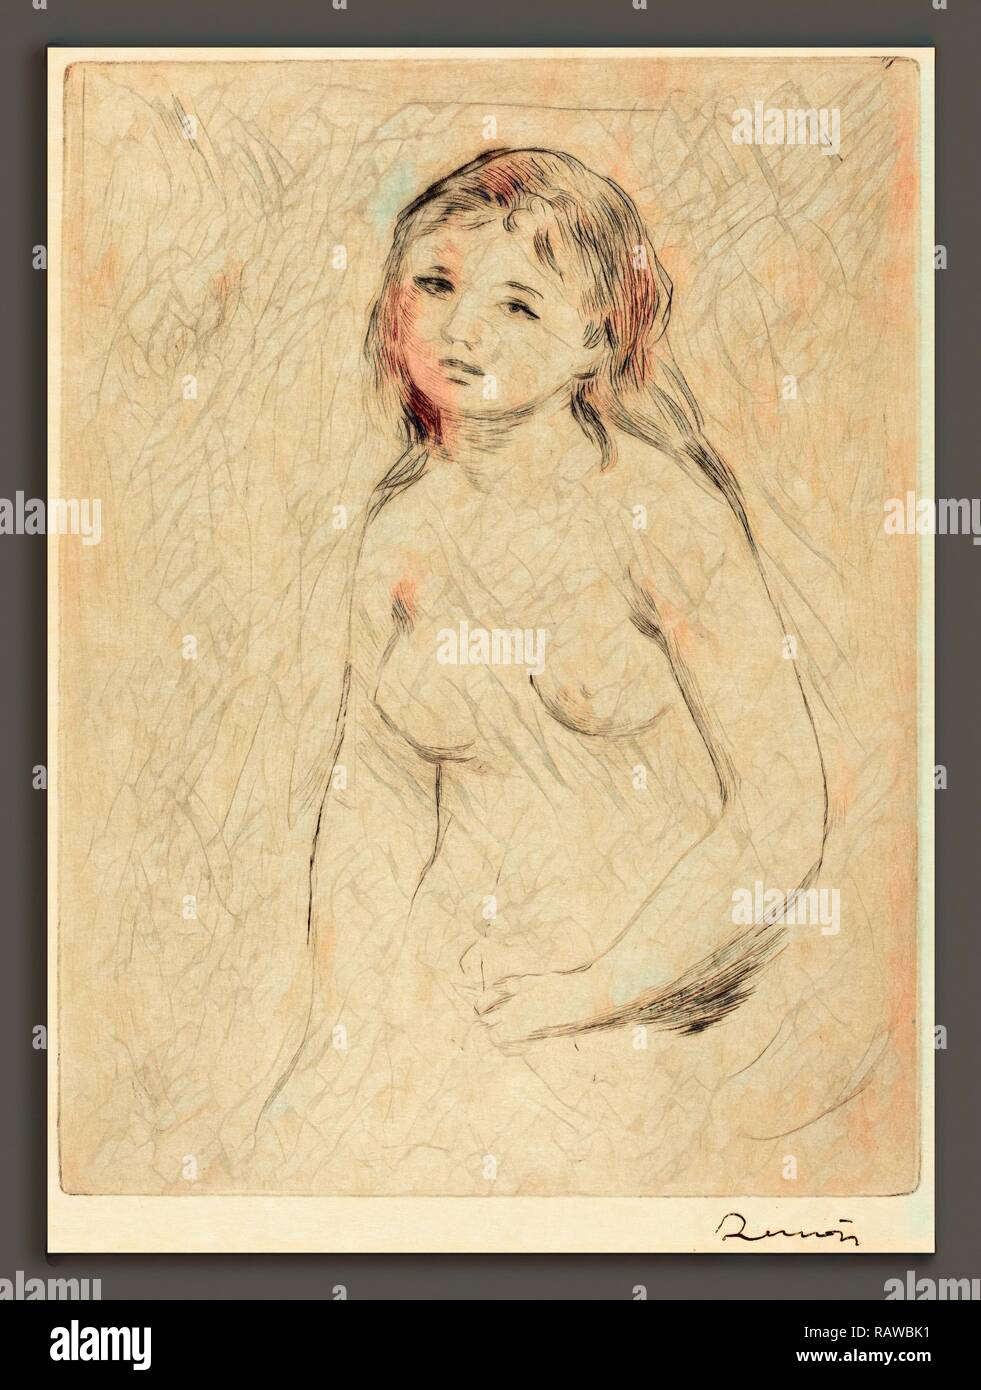 Auguste Renoir, Study for a Bather (Etude pour une baigneuse), French, 1841 - 1919, drypoint. Reimagined - Stock Image